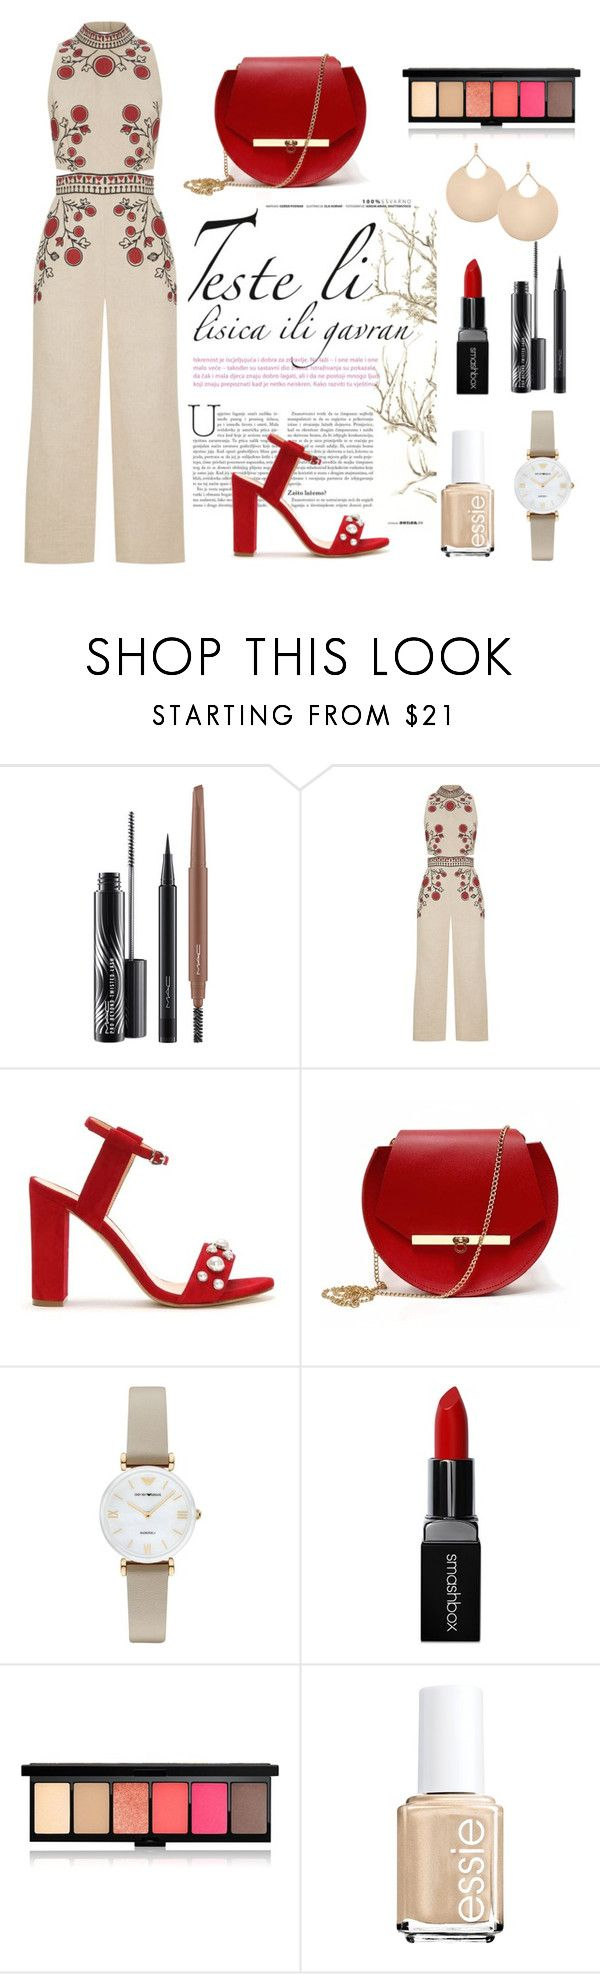 """Untitled #27"" by modabeauty ❤ liked on Polyvore featuring MAC Cosmetics, Whistles, Angela Valentine Handbags, Emporio Armani and Smashbox"